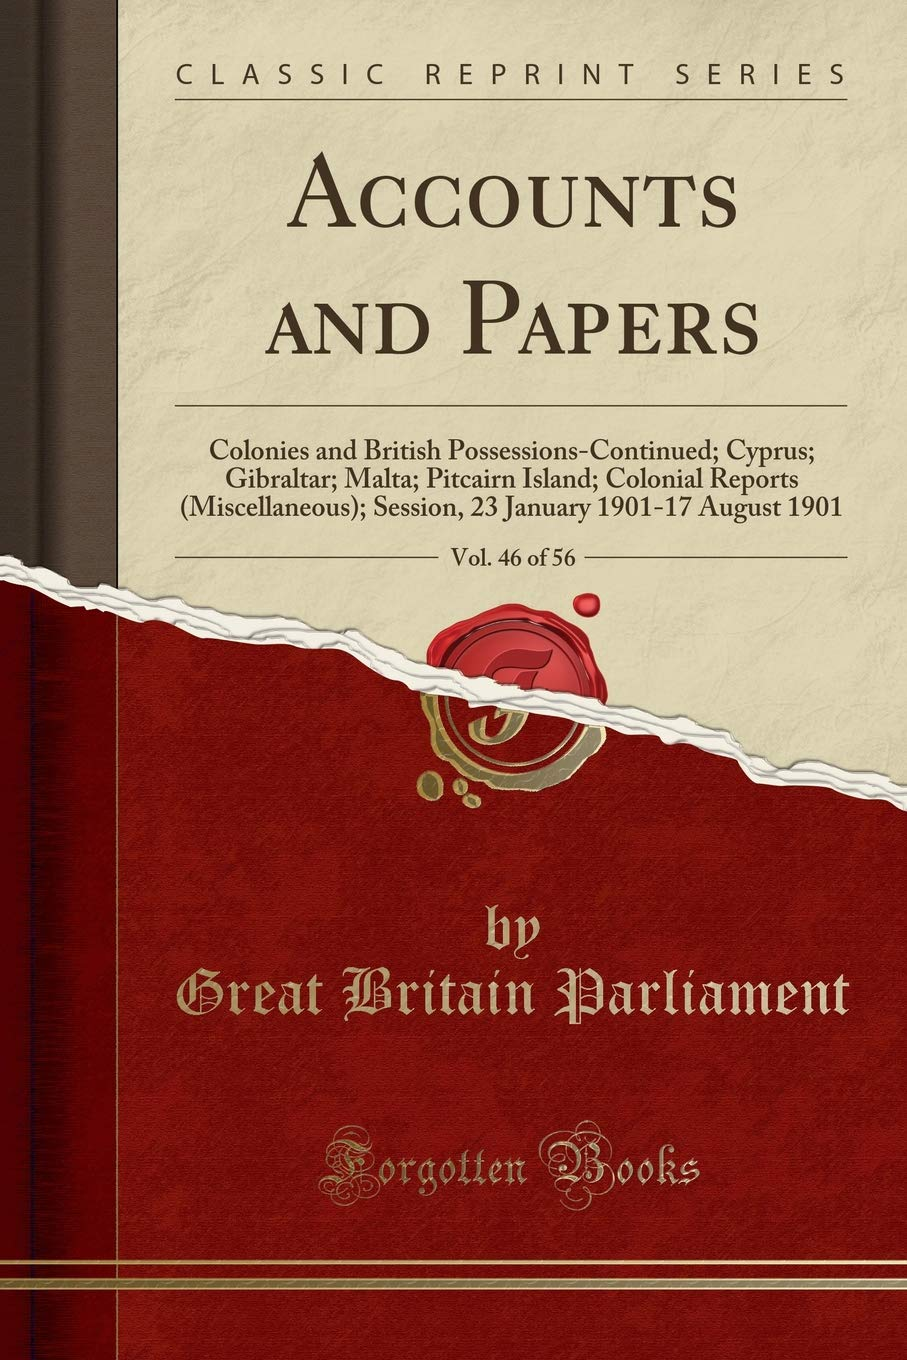 Accounts and Papers, Vol. 46 of 56: Colonies and British Possessions-Continued; Cyprus; Gibraltar; Malta; Pitcairn Island; Colonial Reports ... January 1901-17 August 1901 (Classic Reprint) PDF